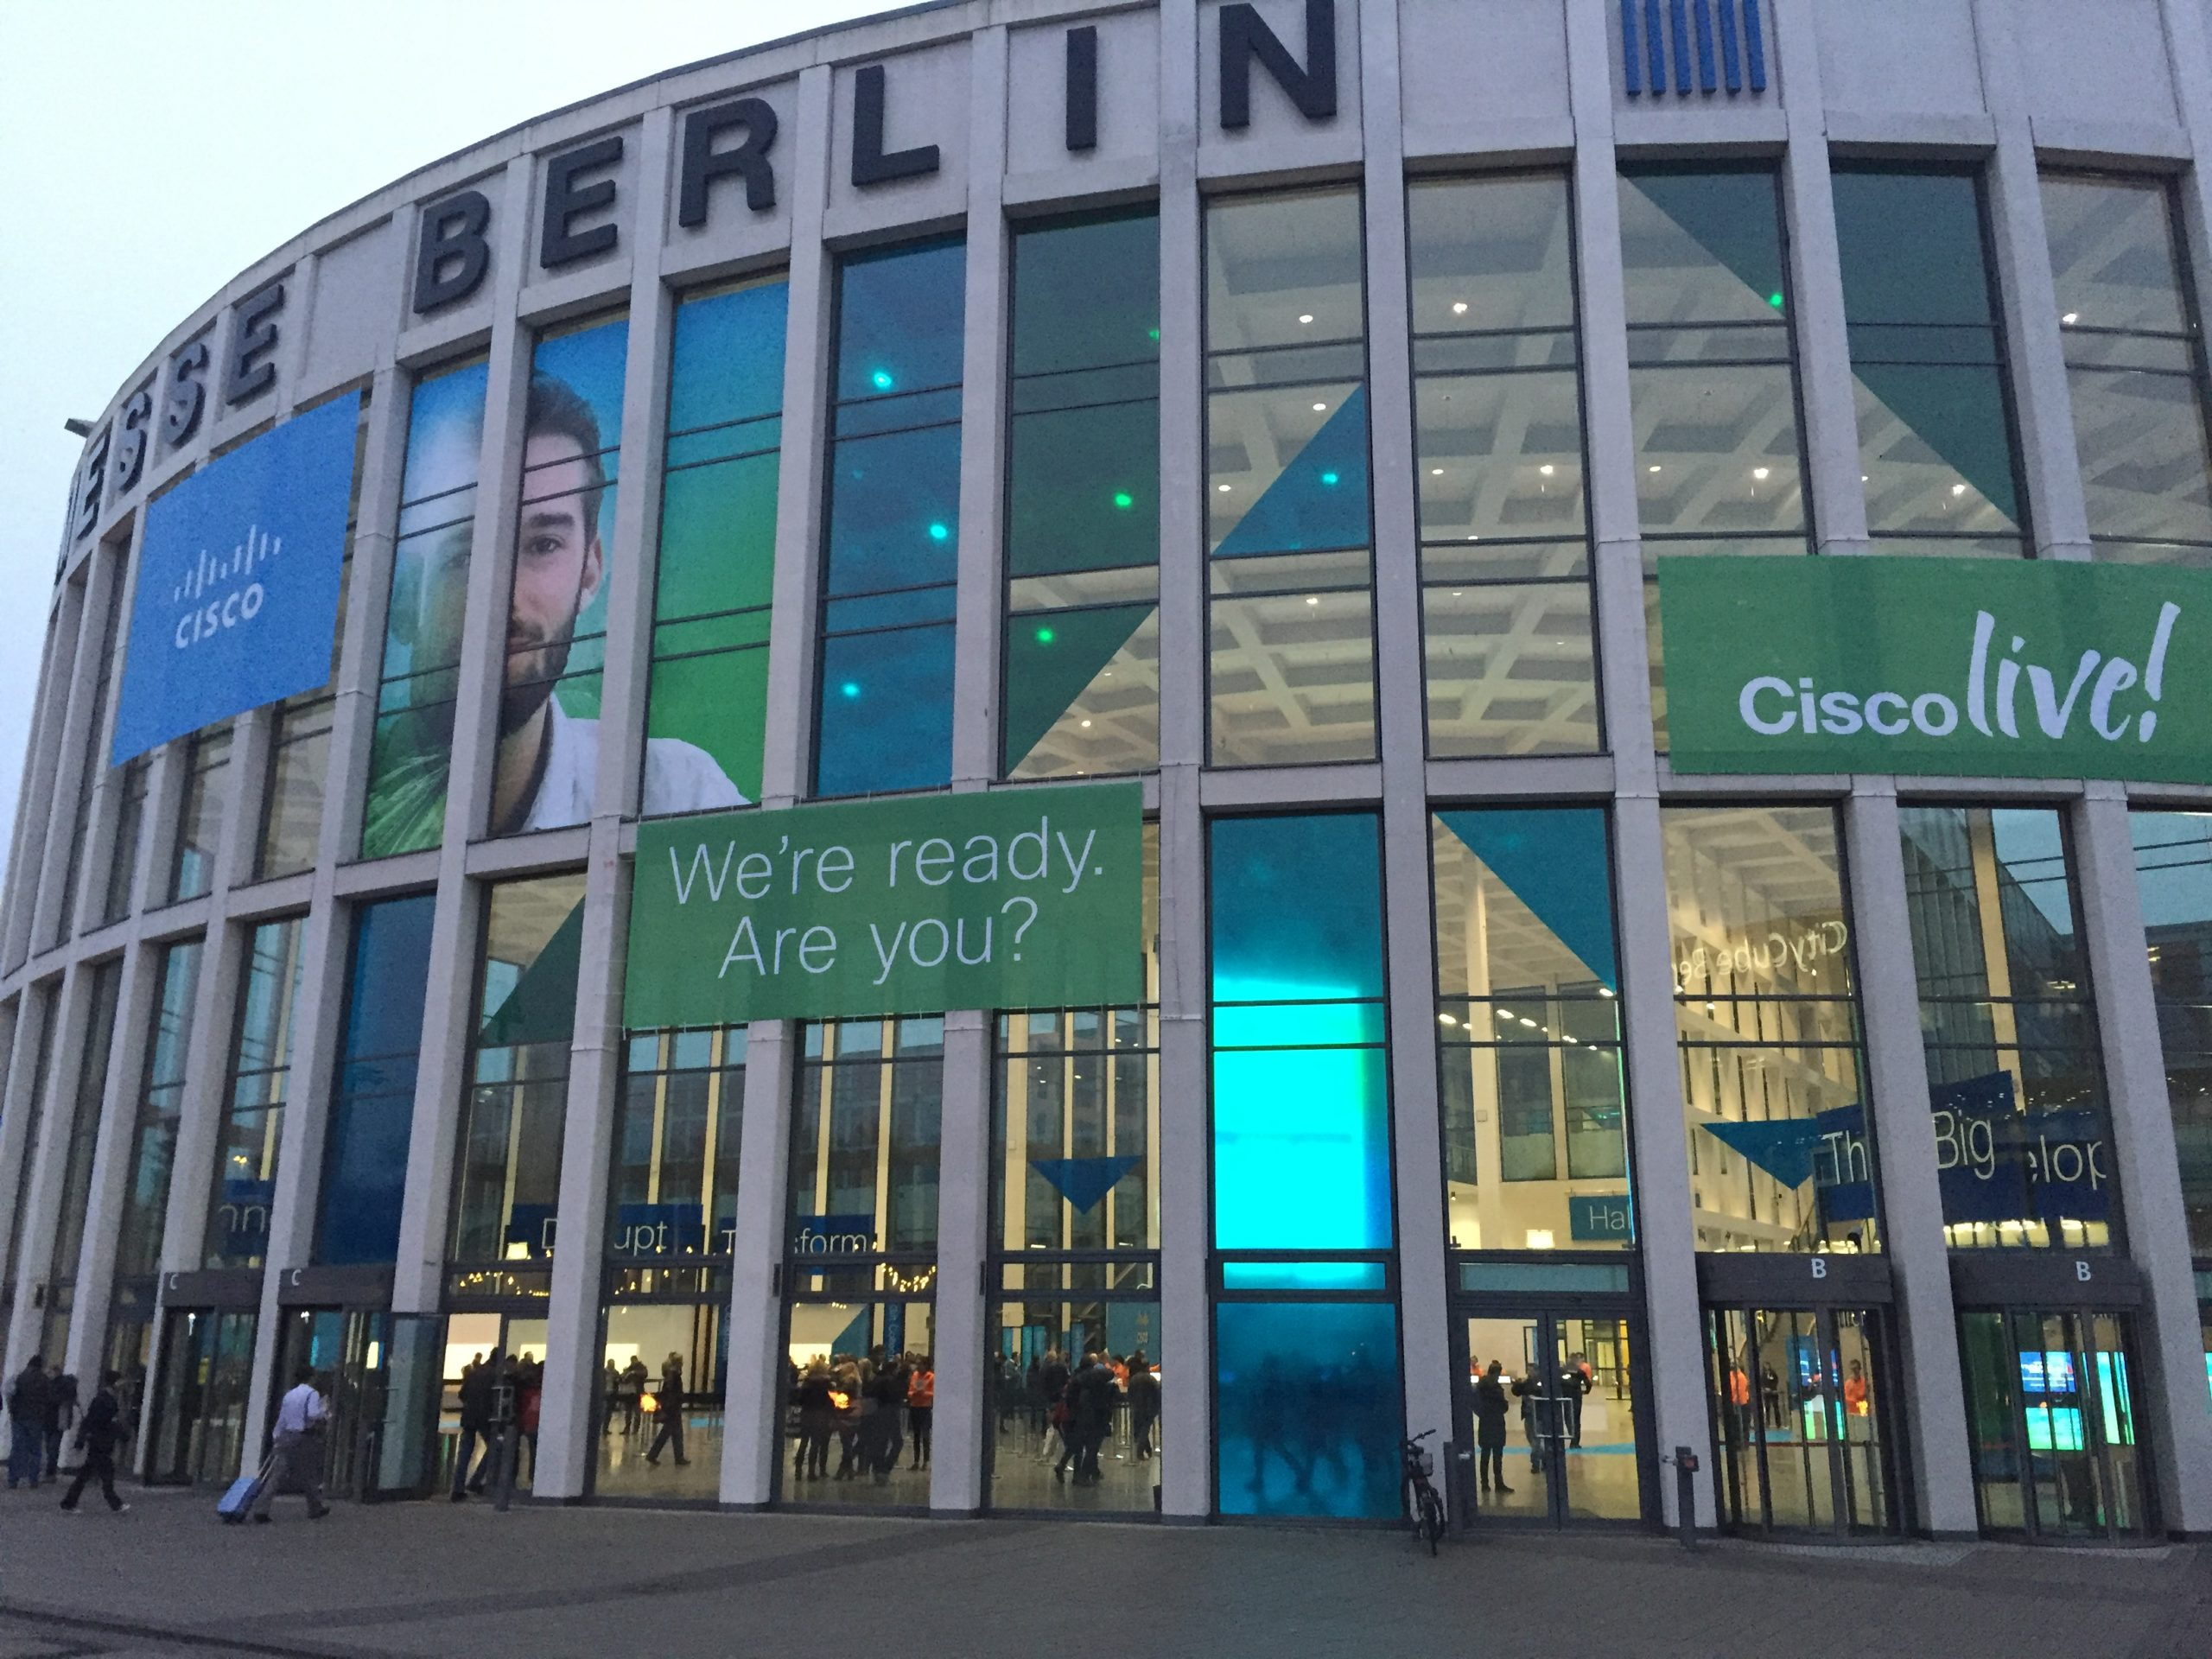 Memories of Cisco Live II – Berlin 2016